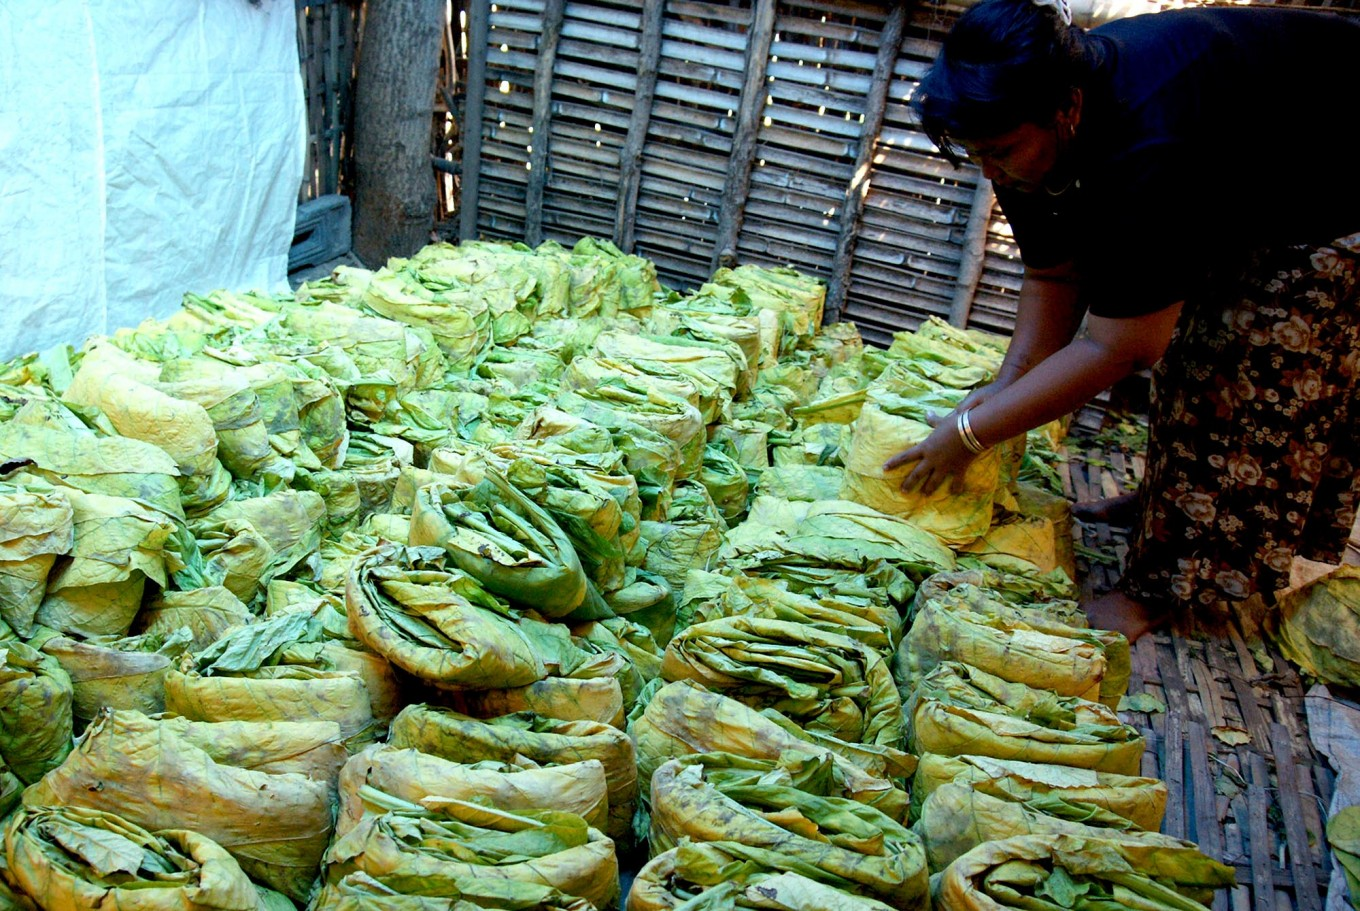 A woman arranges the folded tobacco leaves into neat rows for processing further. JP/Wahyoe Boediwardhana